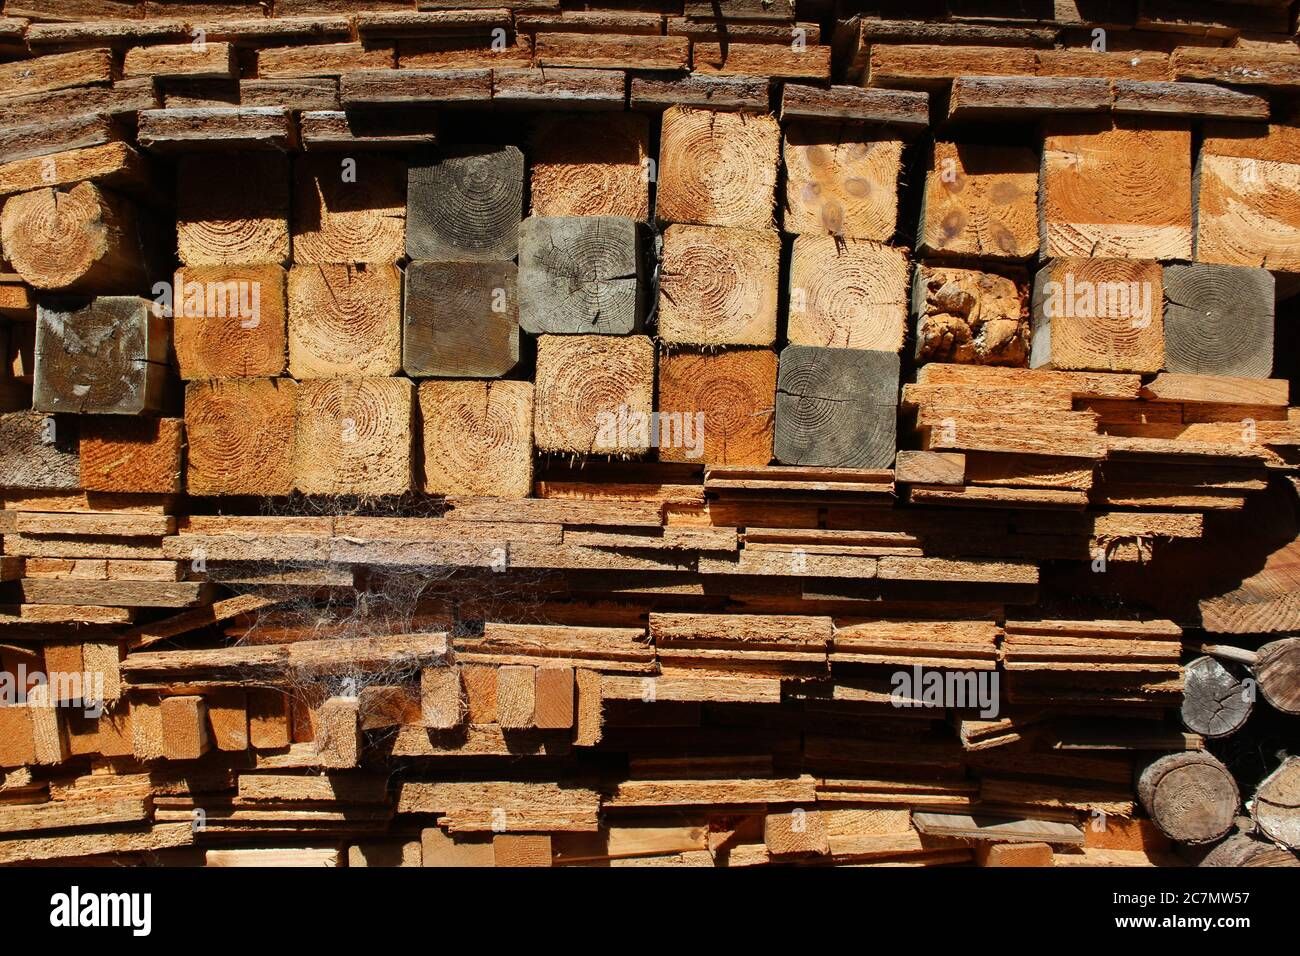 A pile of processed wood intended to serve as firewood / burning material Stock Photo